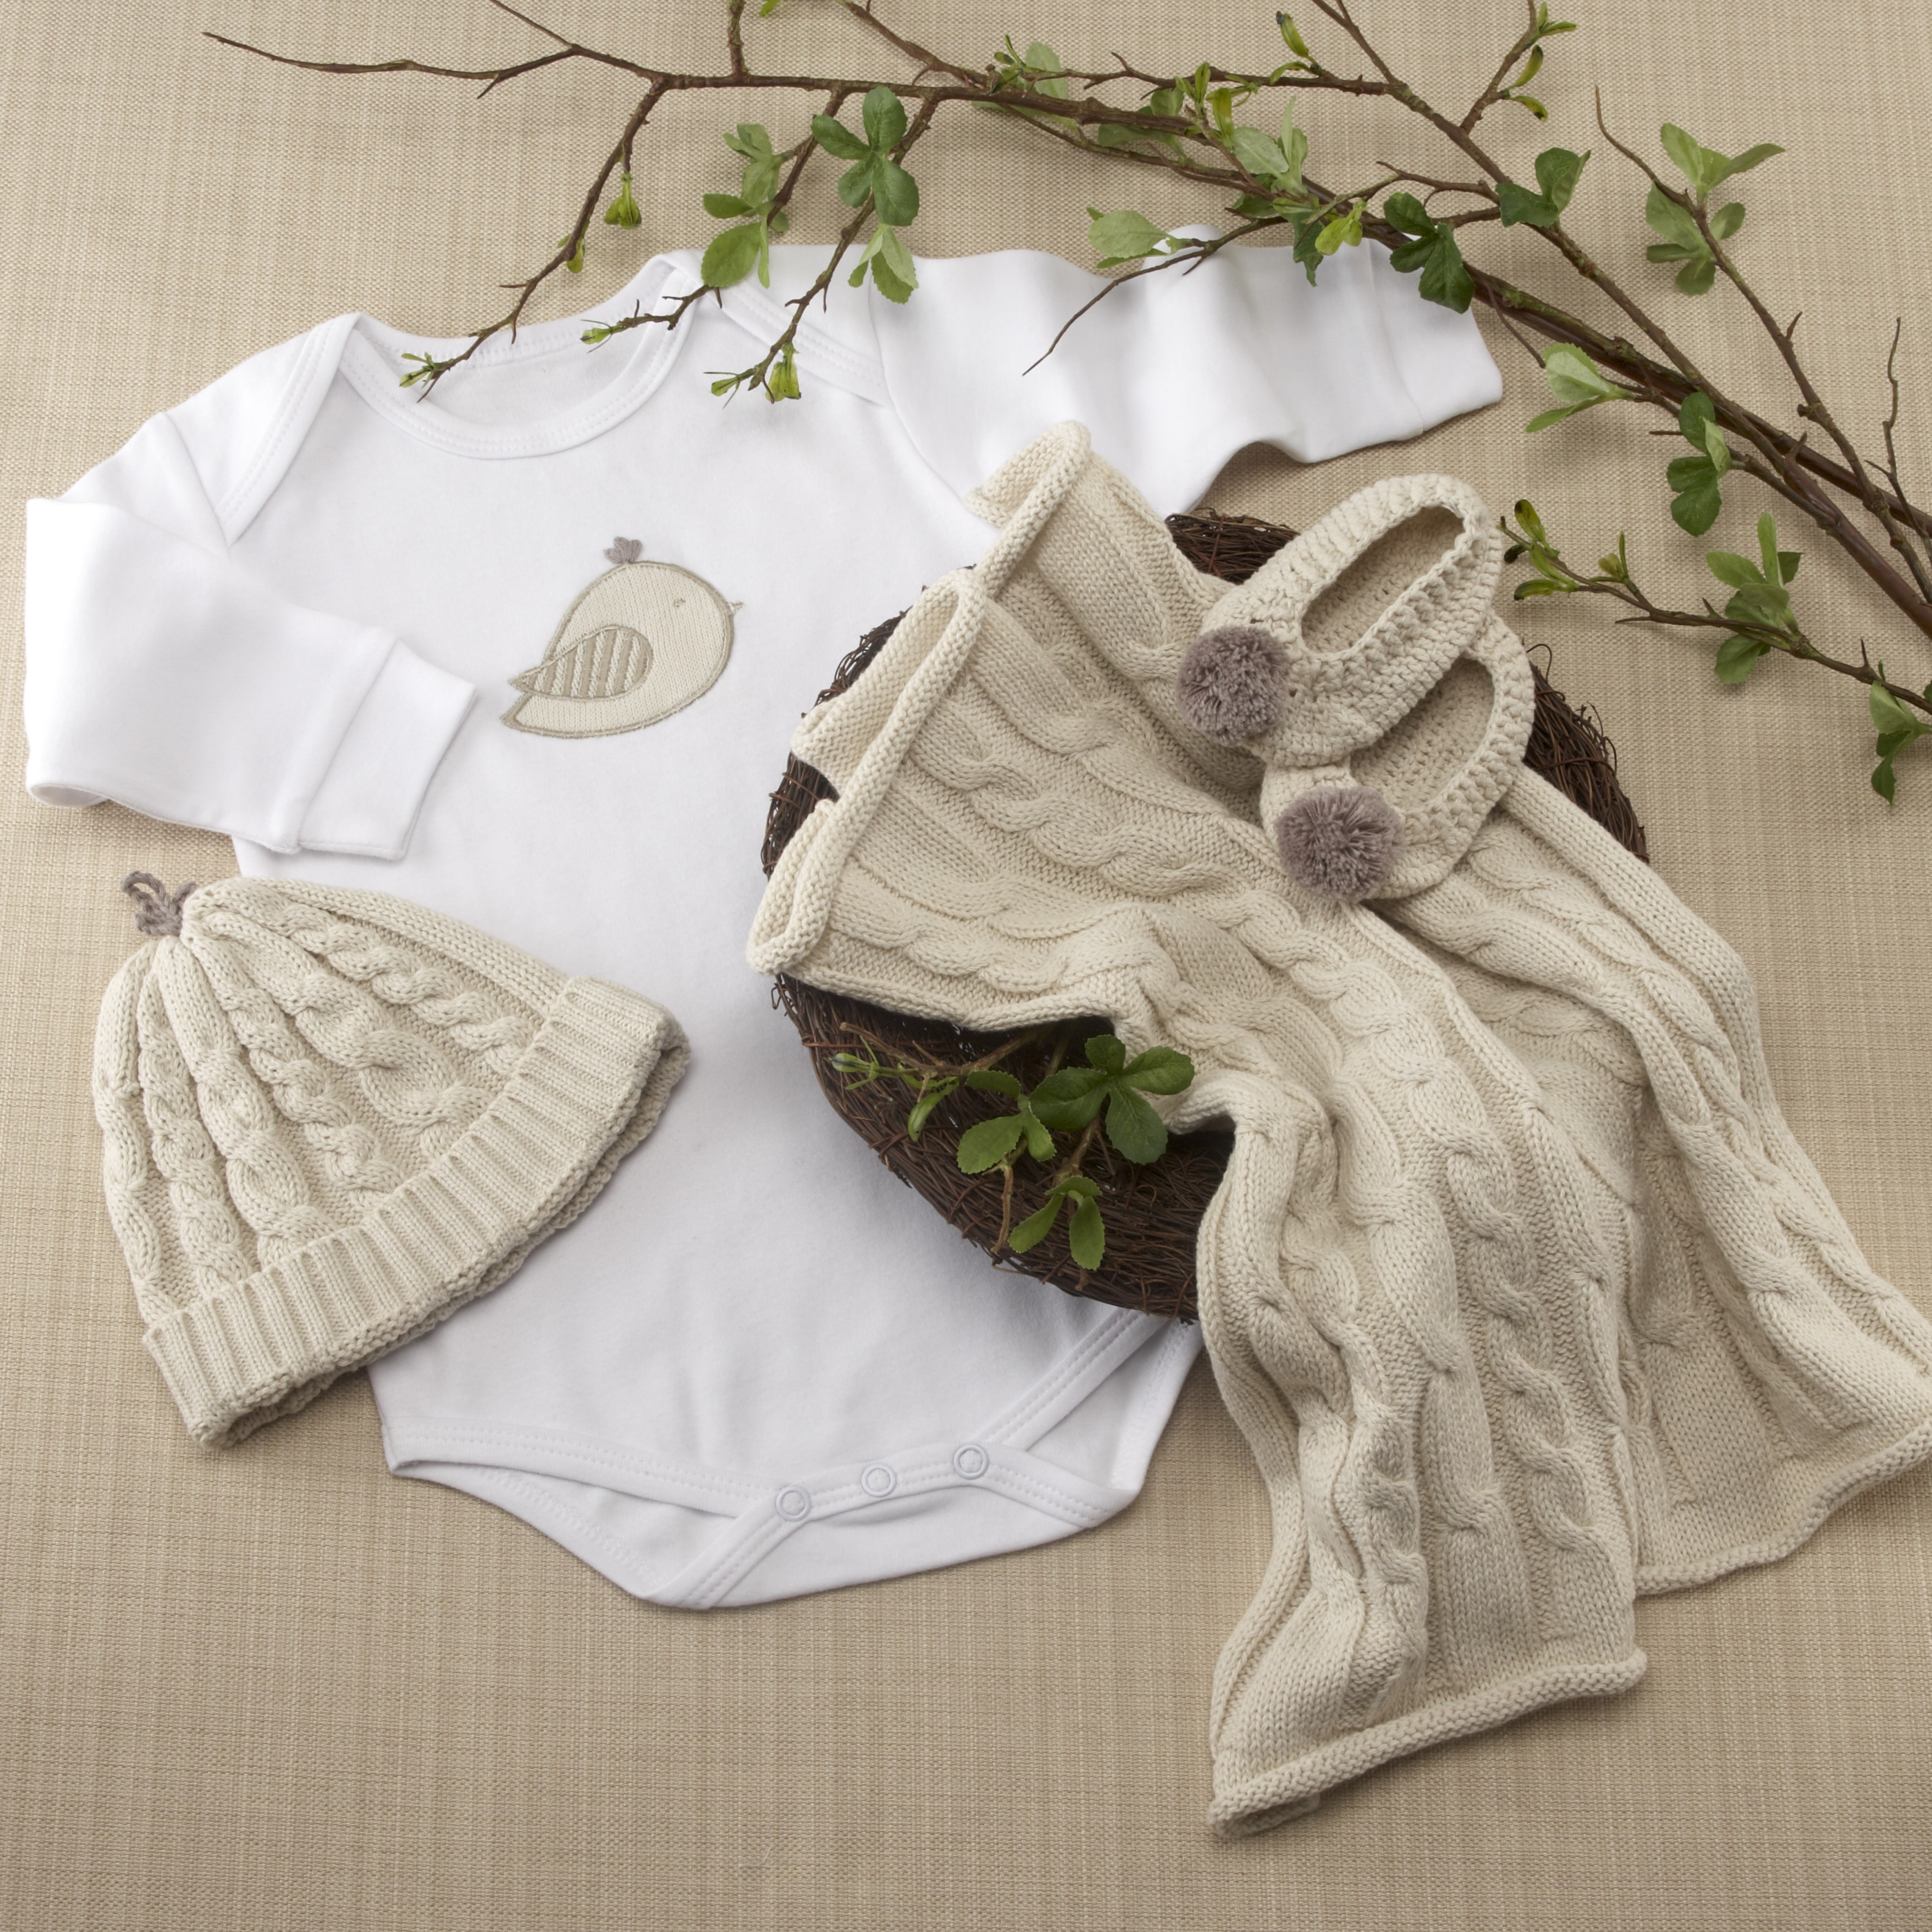 Baby Aspen Feathering Nest Piece Layette Gift Set